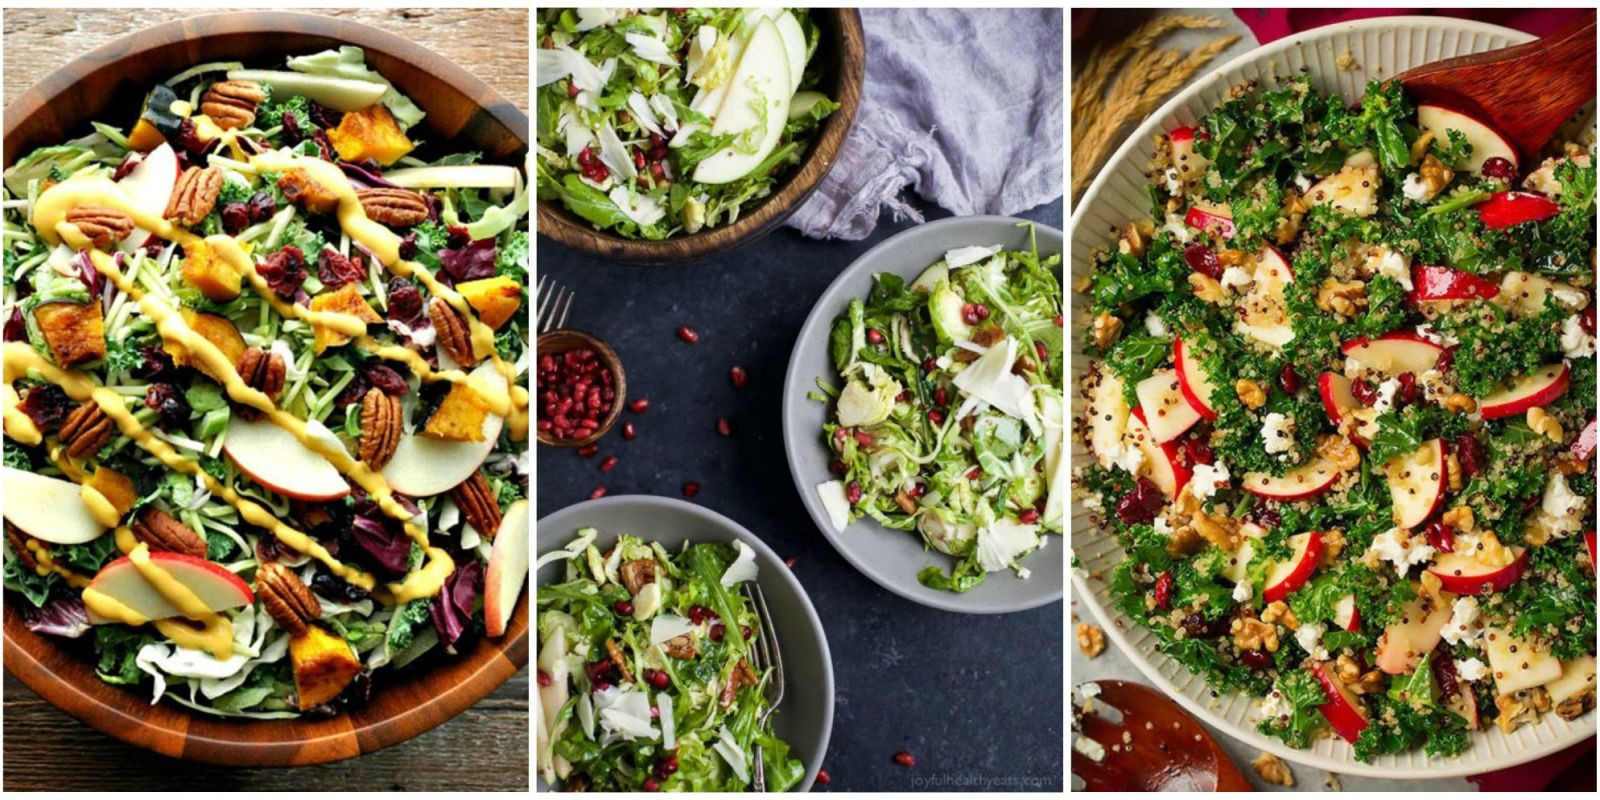 Salad For Thanksgiving Dinner  11 Easy Thanksgiving Salad Recipes Best Side Salads for